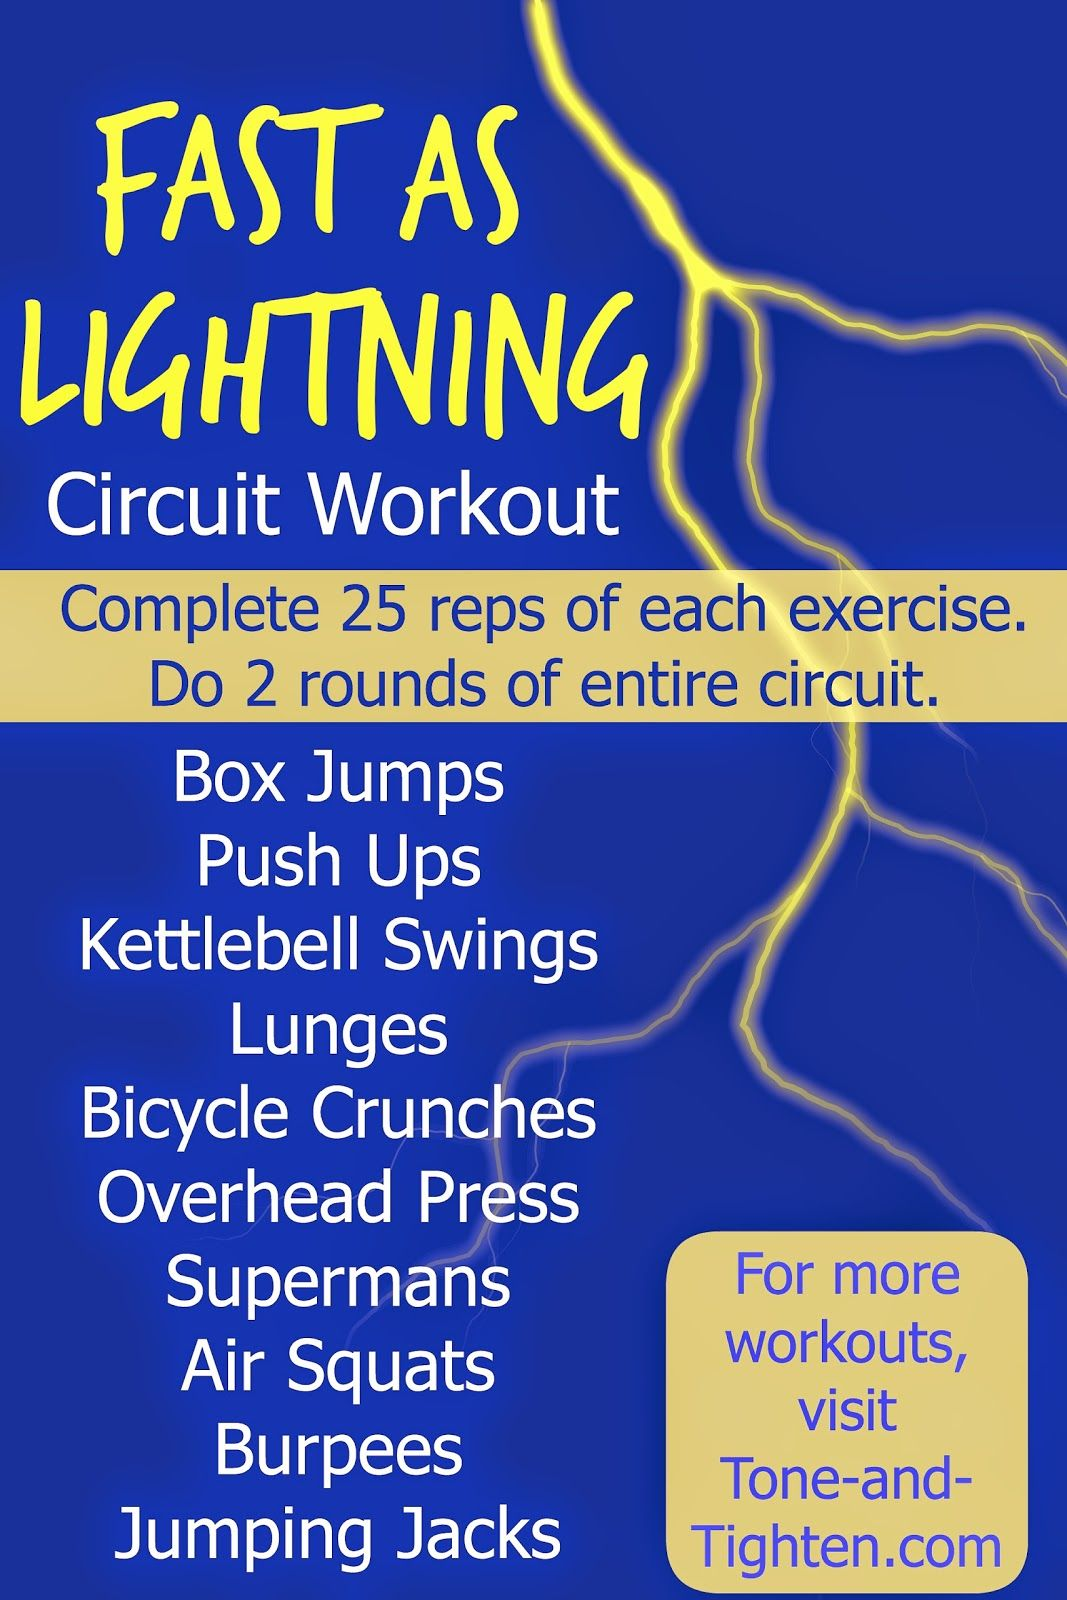 Fast As Lightning Total Body Circuit Workout Tone And Tighten Full With Weights Workouts Pinterest From Tightencom Fitness Crossfit